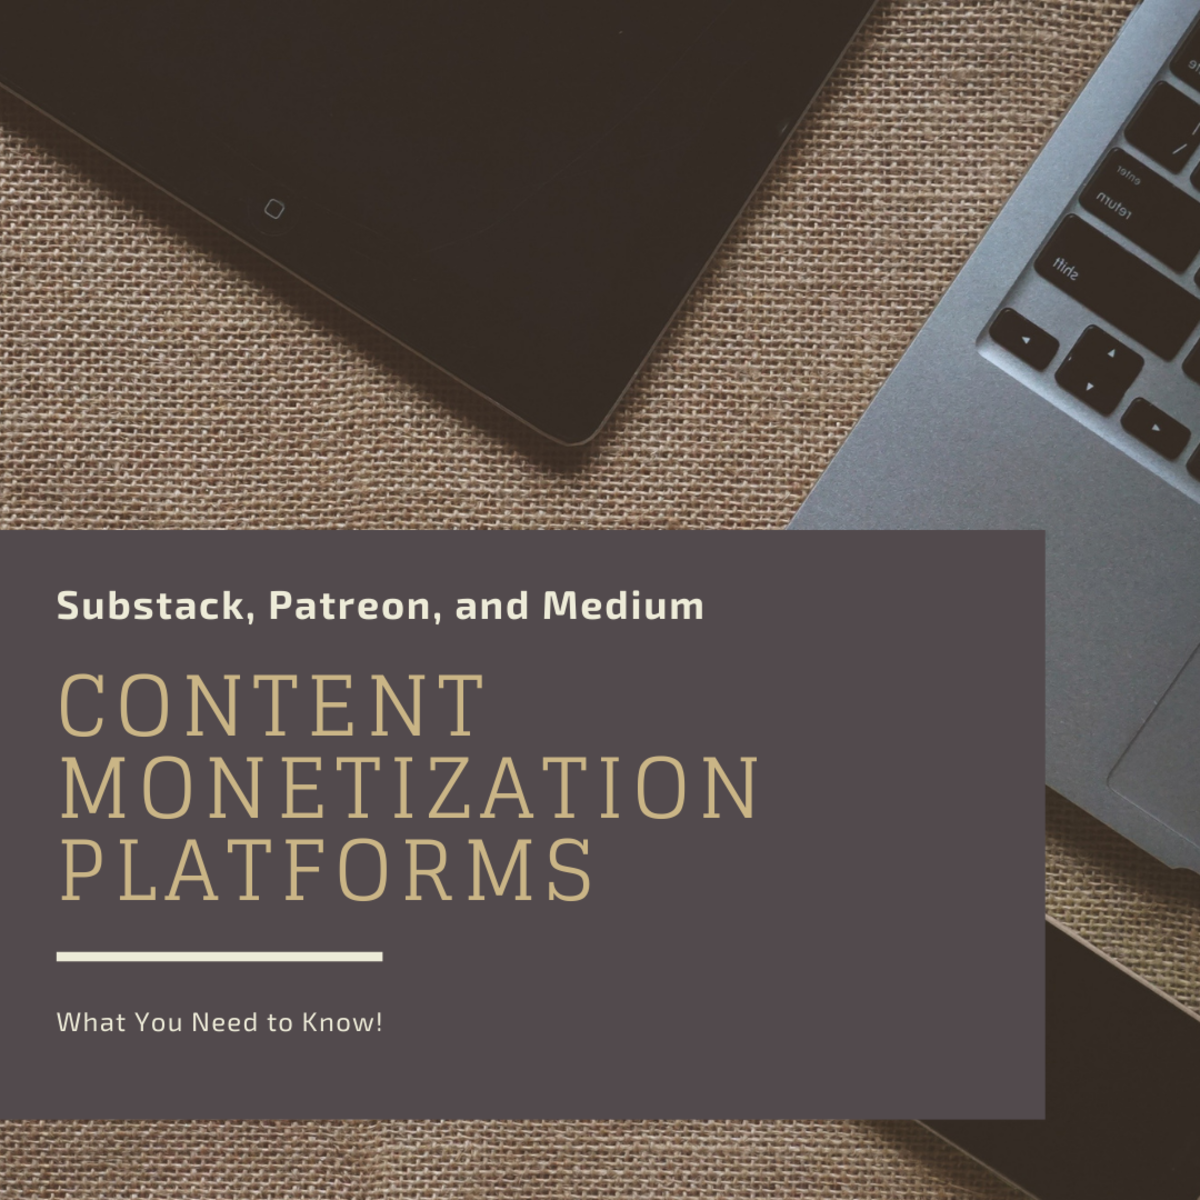 Substack, Patreon, and Medium: What You Need to Know About Content Monetization Platforms